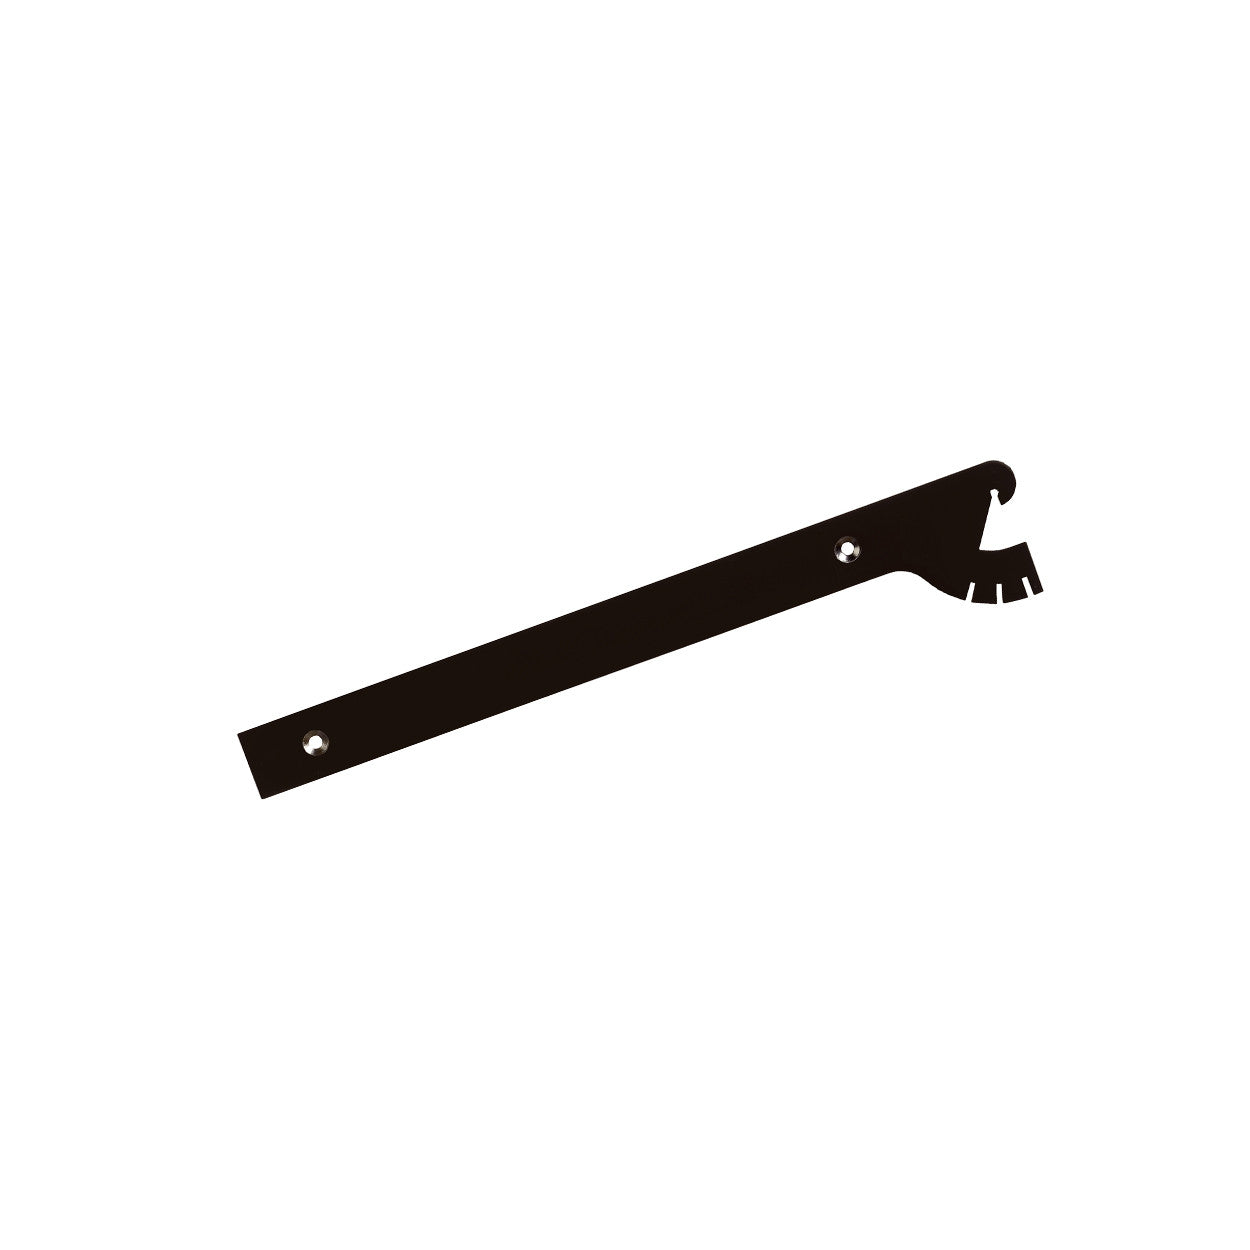 Maxe 300Mm Shelf Bracket Multi Angle Set With Screws & Tool 300 L X 2.5Mm Thick E6103BK